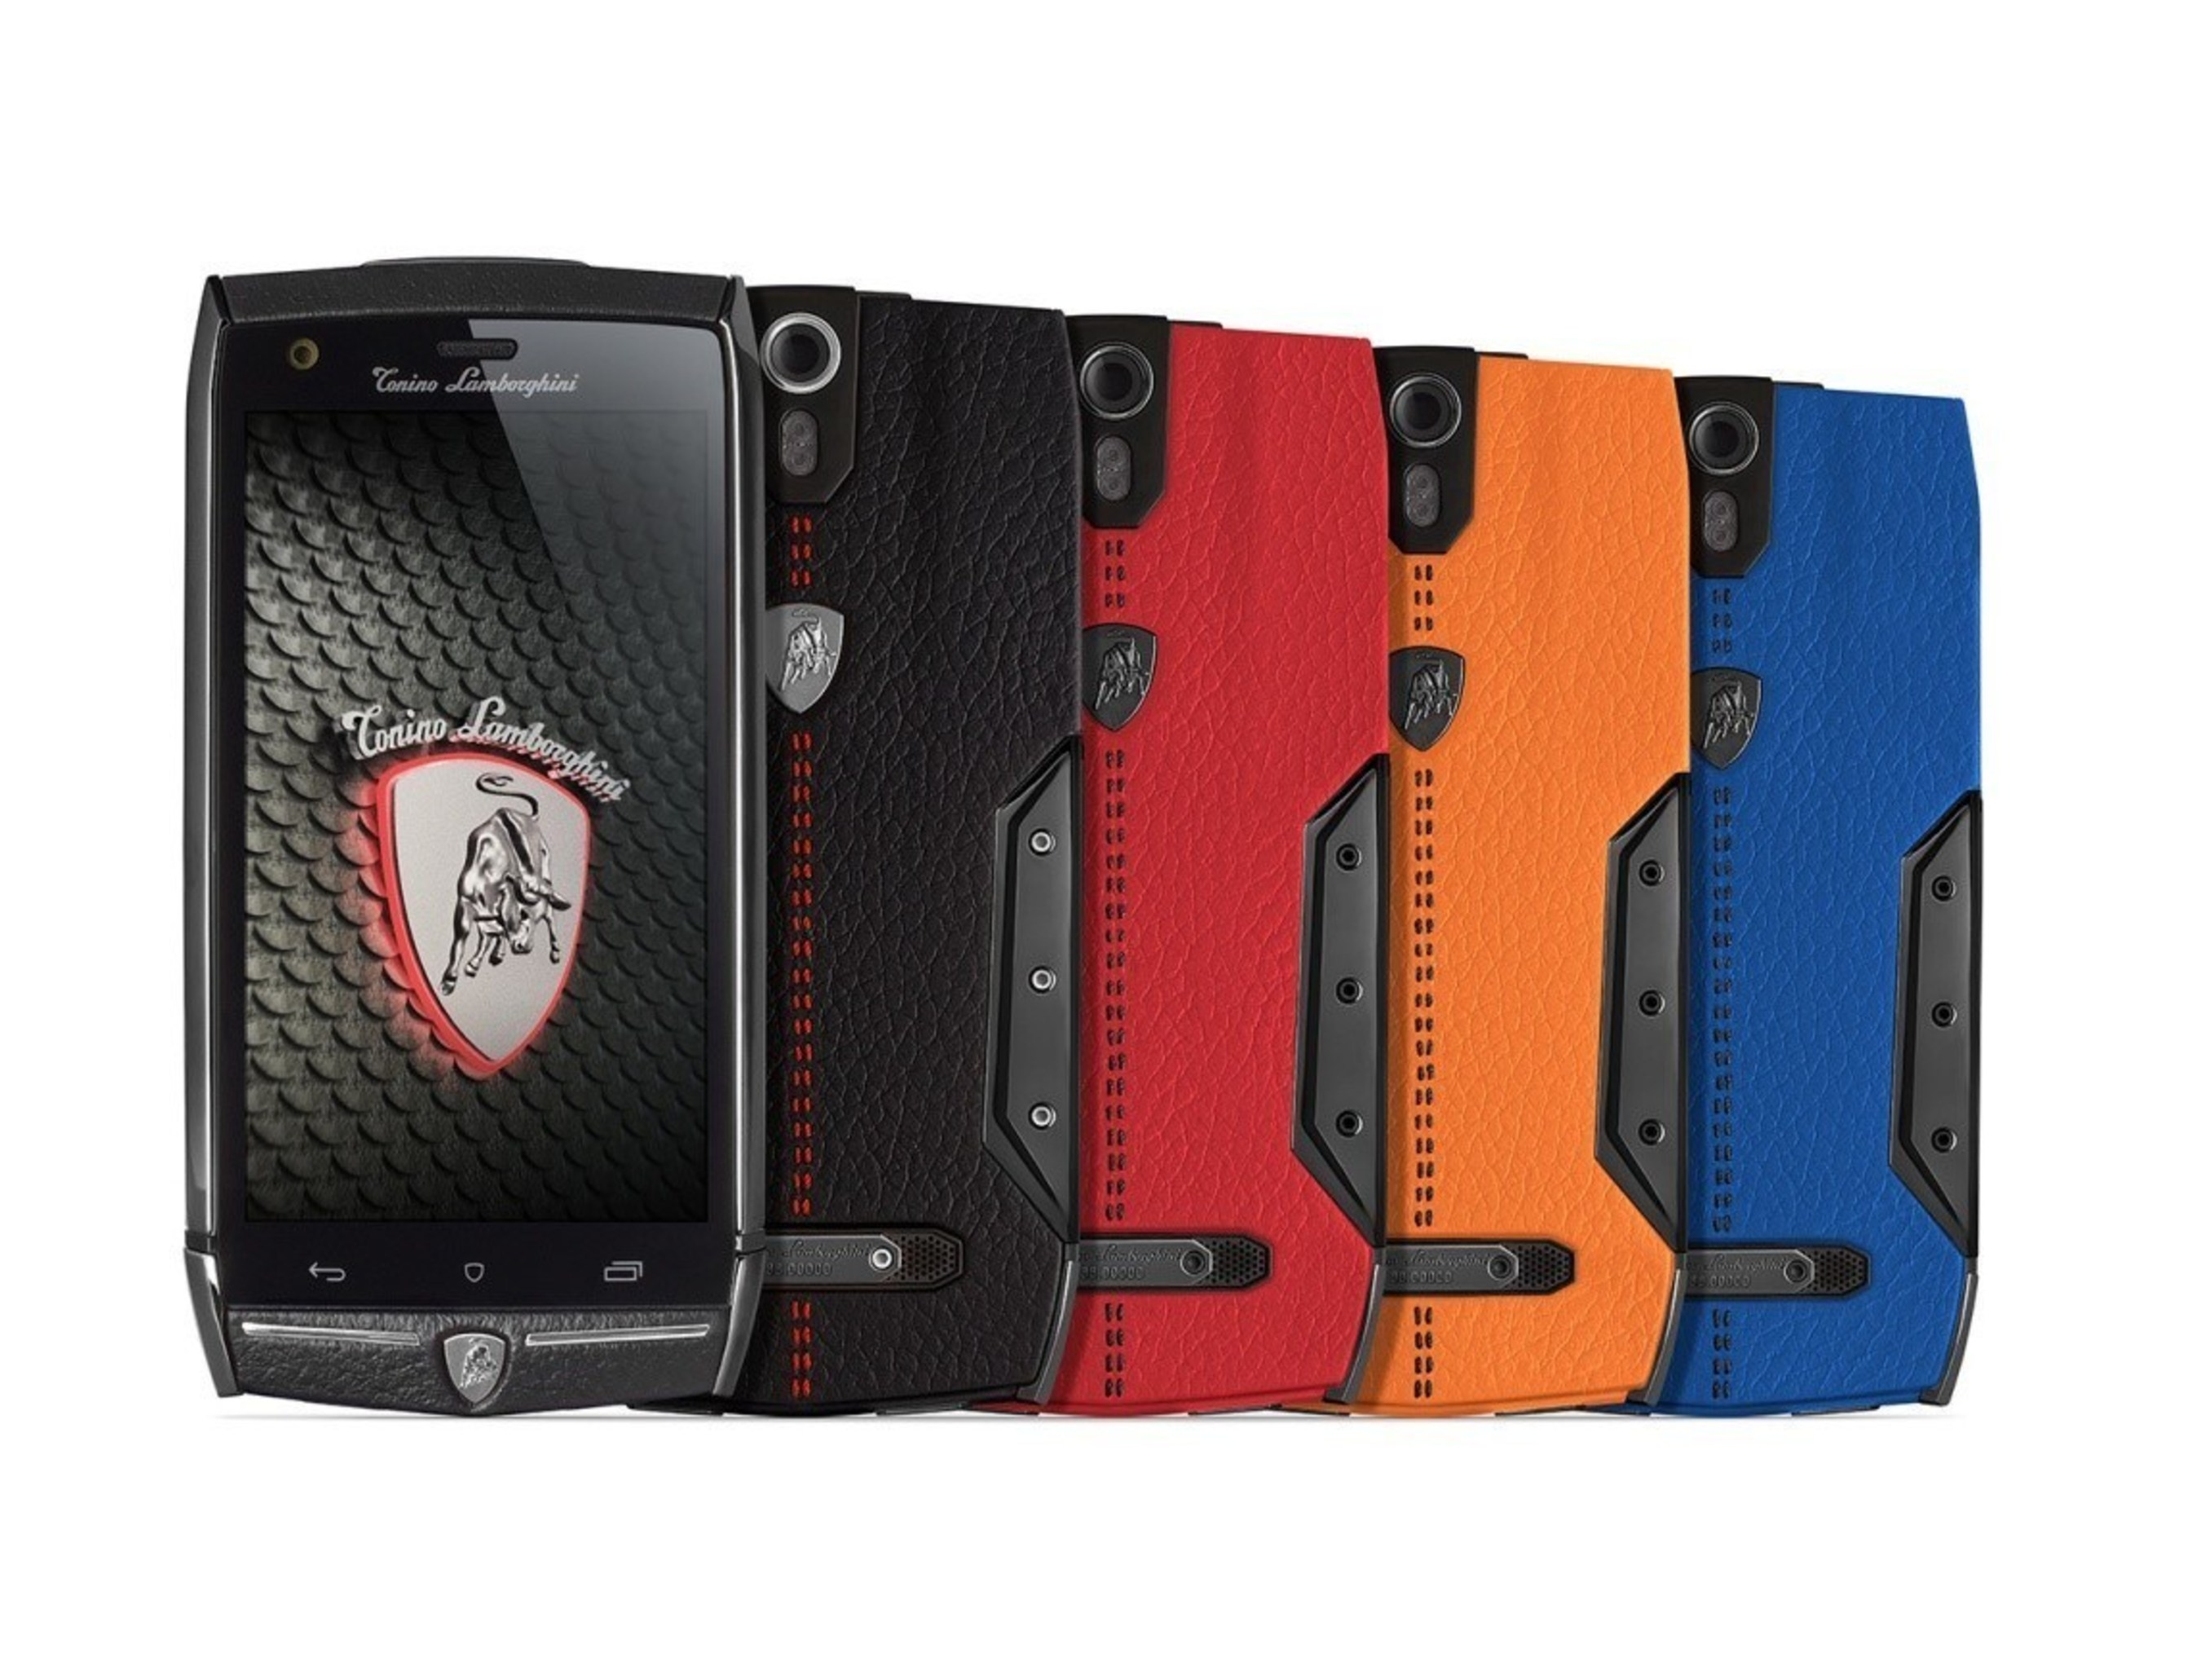 Tonino Lamborghini Mobile today unveiled its latest high-end Android smartphone, the 88 Tauri, at CES 2015